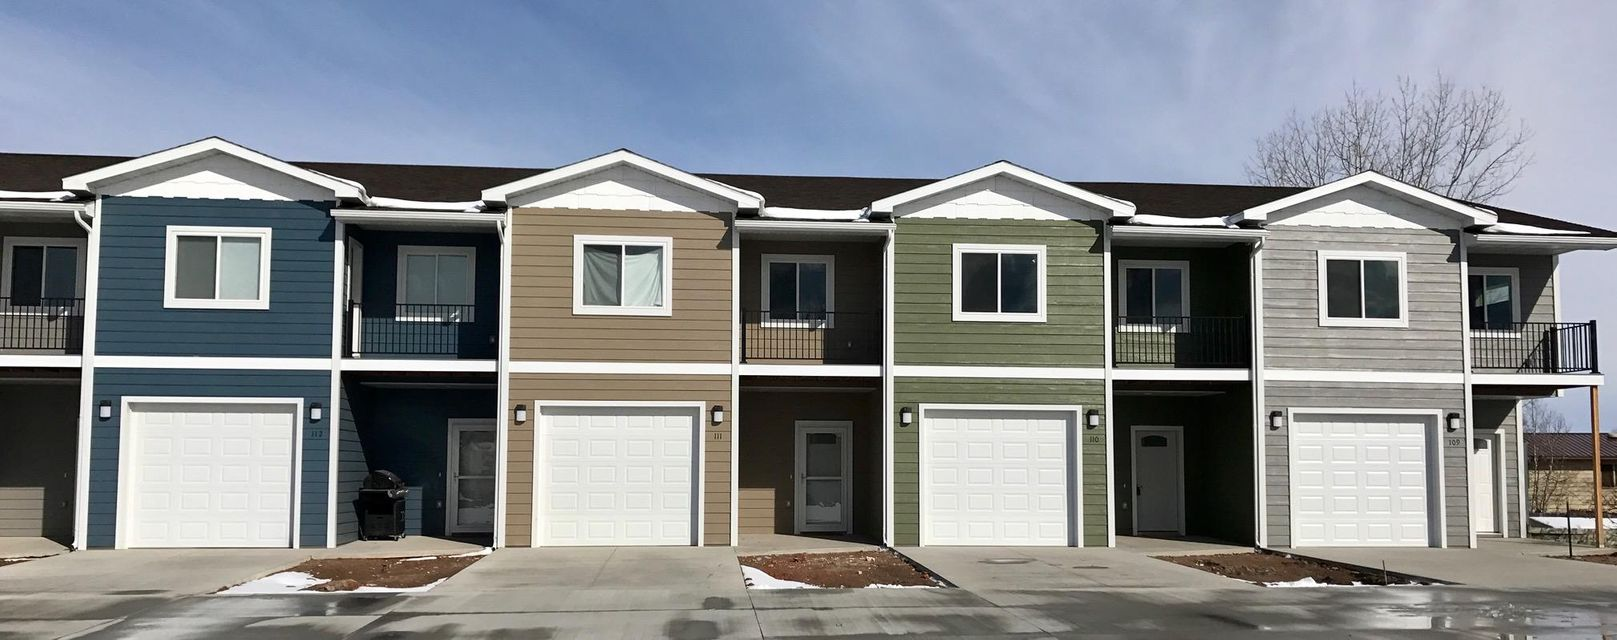 117 Trails West Circle, Ranchester, WY 82839